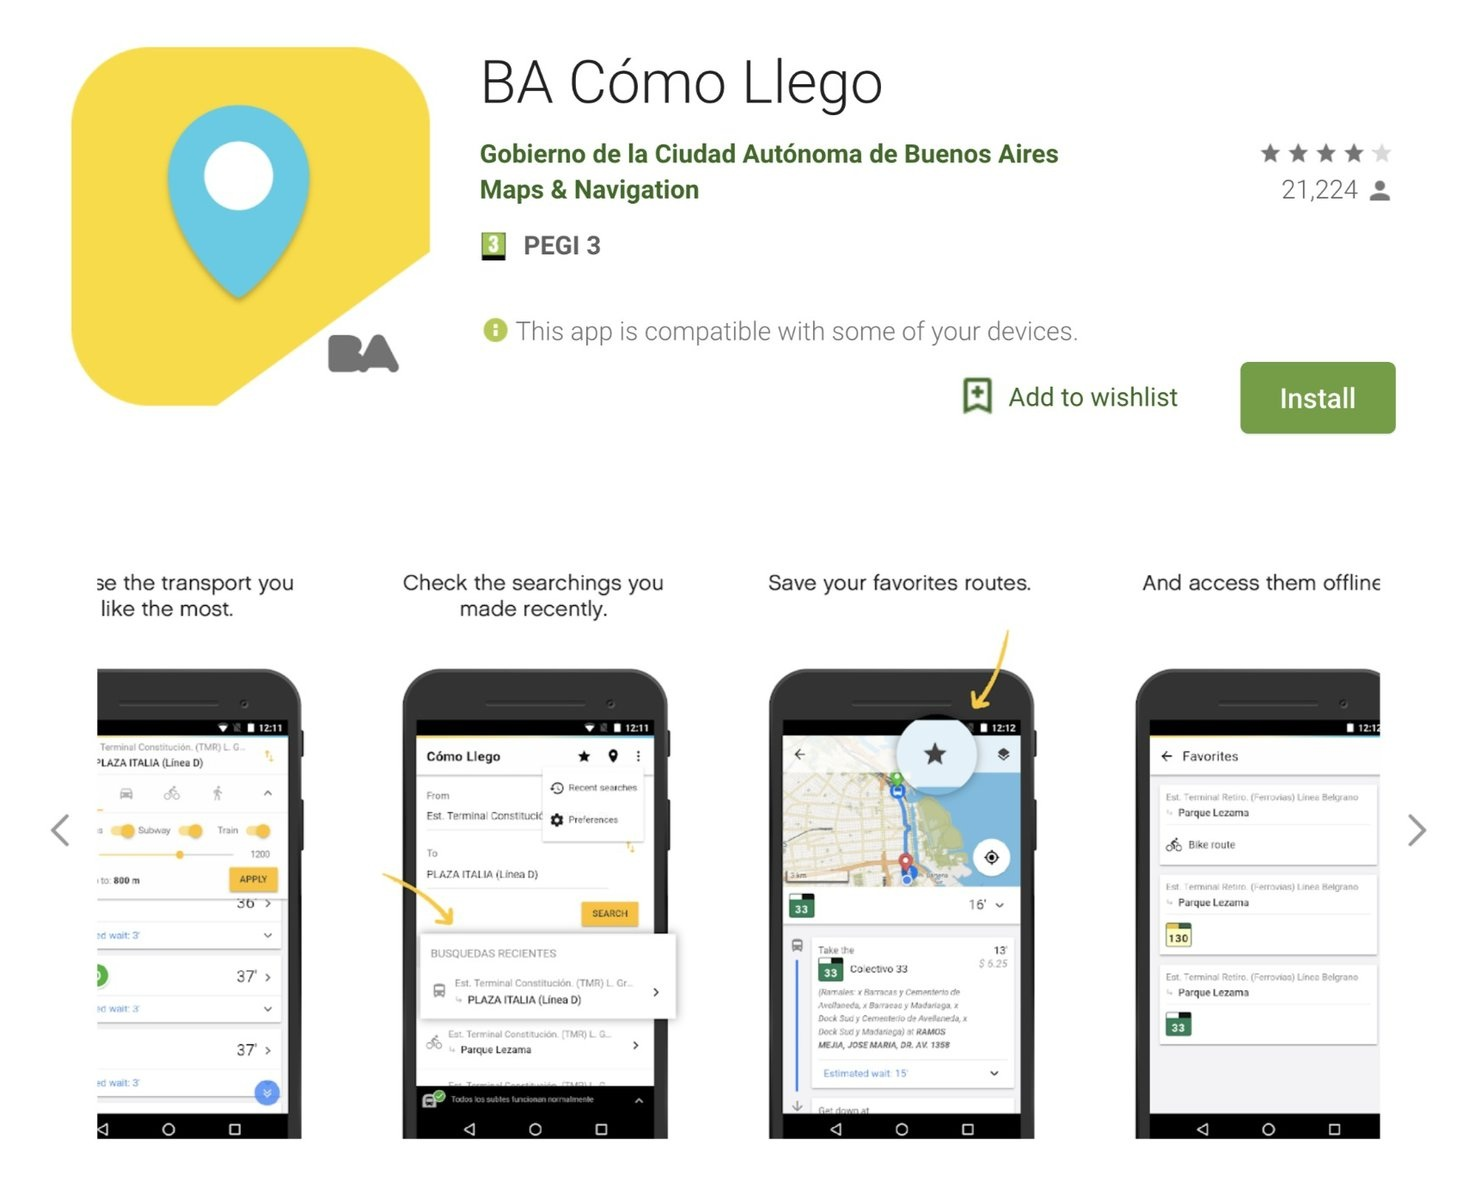 "Application ""BA Cómo Llego"" as advertised in the Google Play Store. Source: Google Play Store. Date: 2019-04-02."